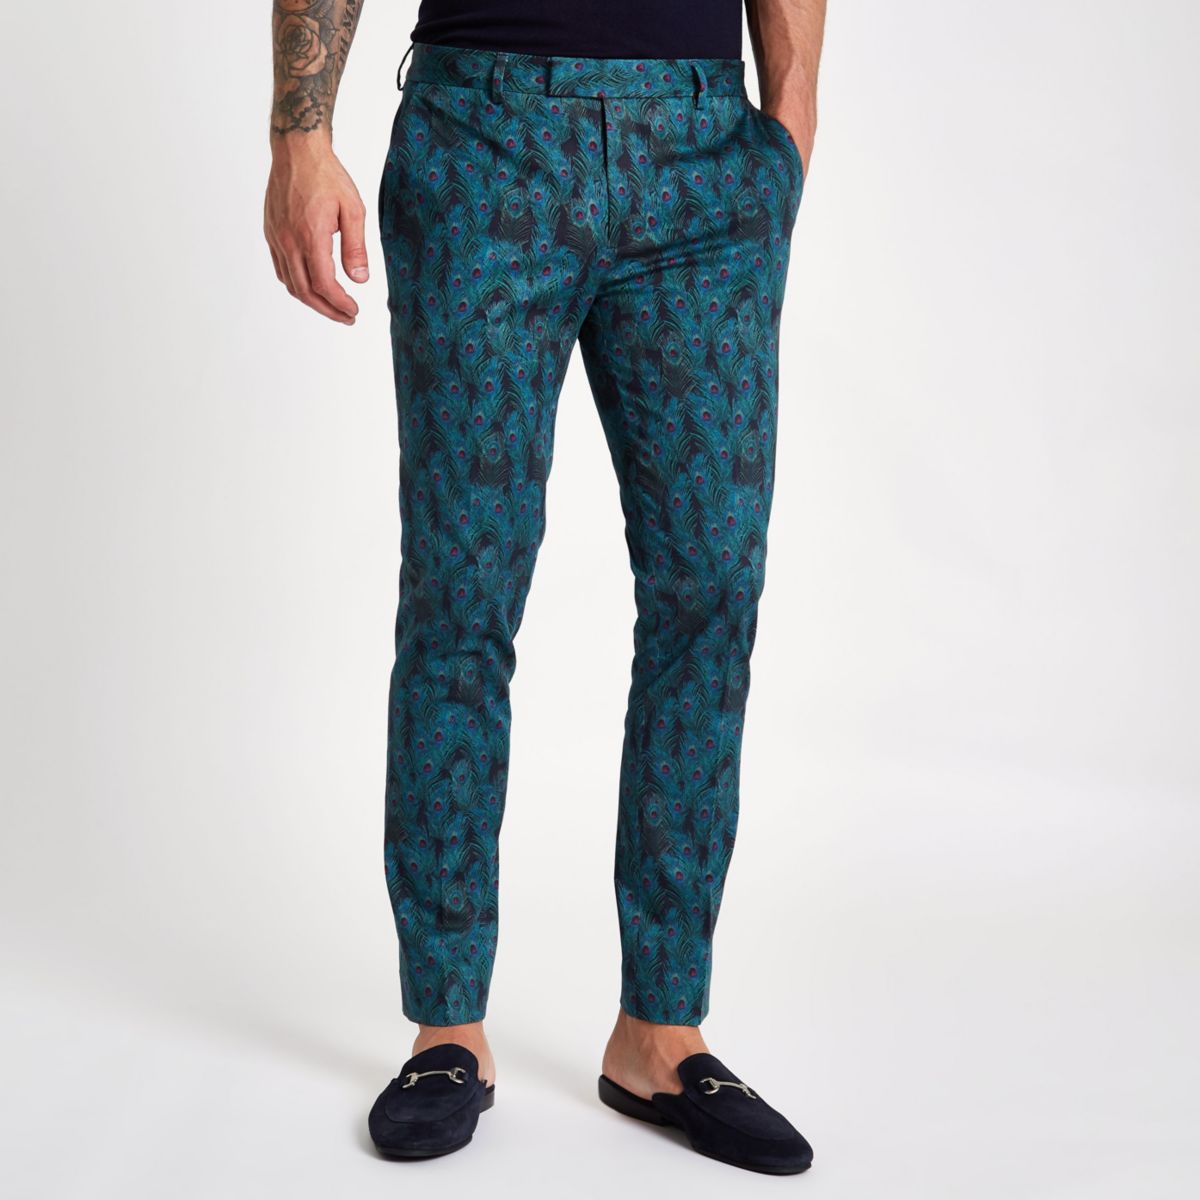 Black peacock print super skinny trousers